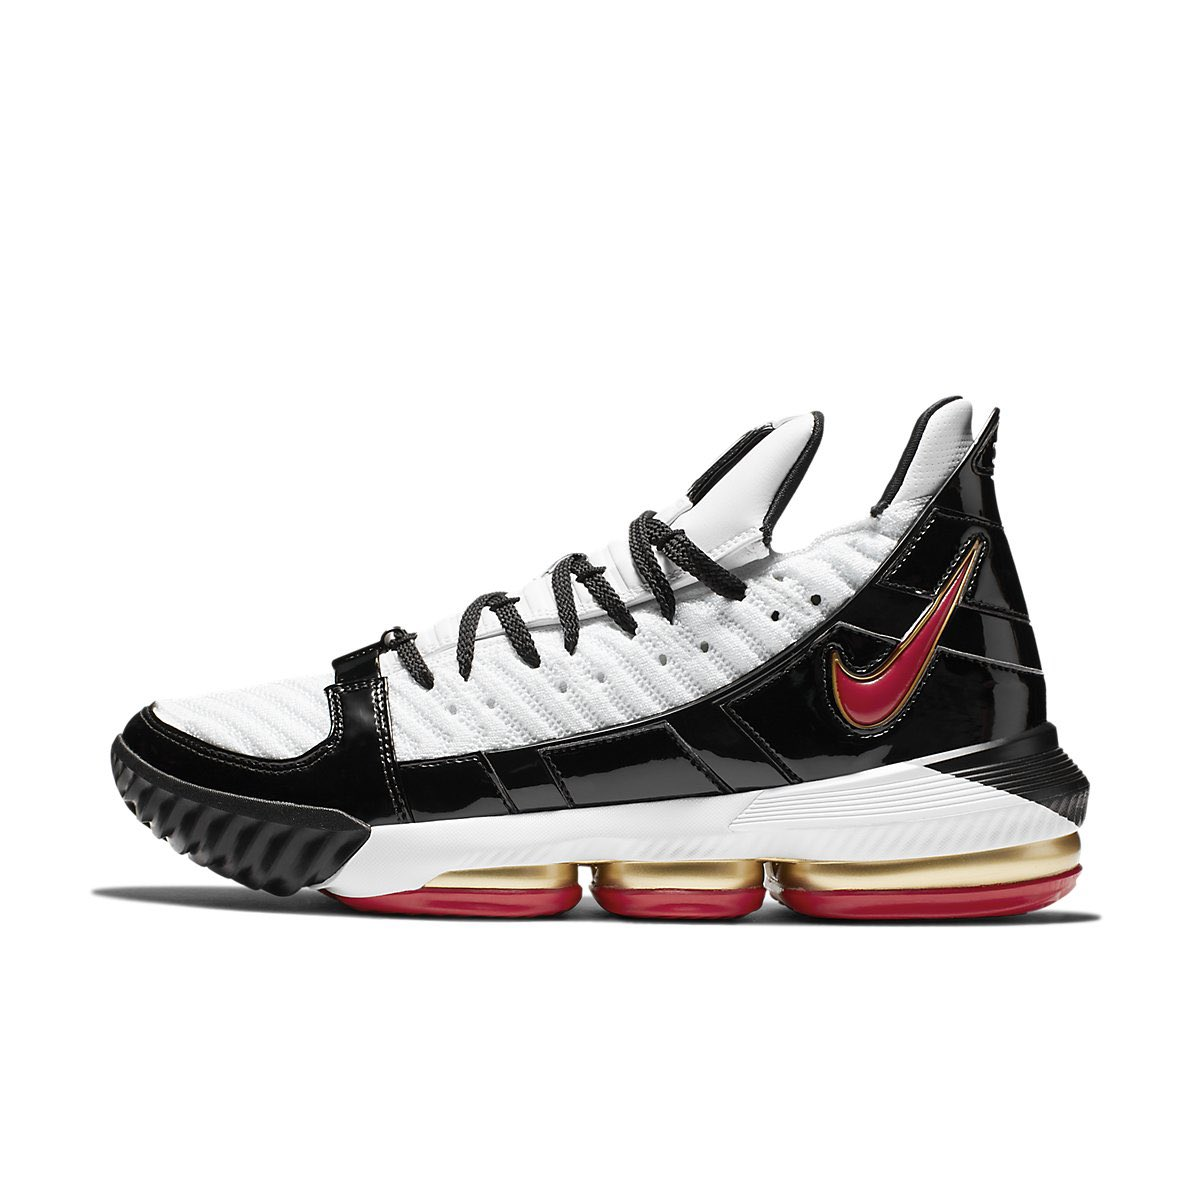 9aa9a13e008 lebron 3 inspired remix nike lebron 16 dropping soon lebronwatch